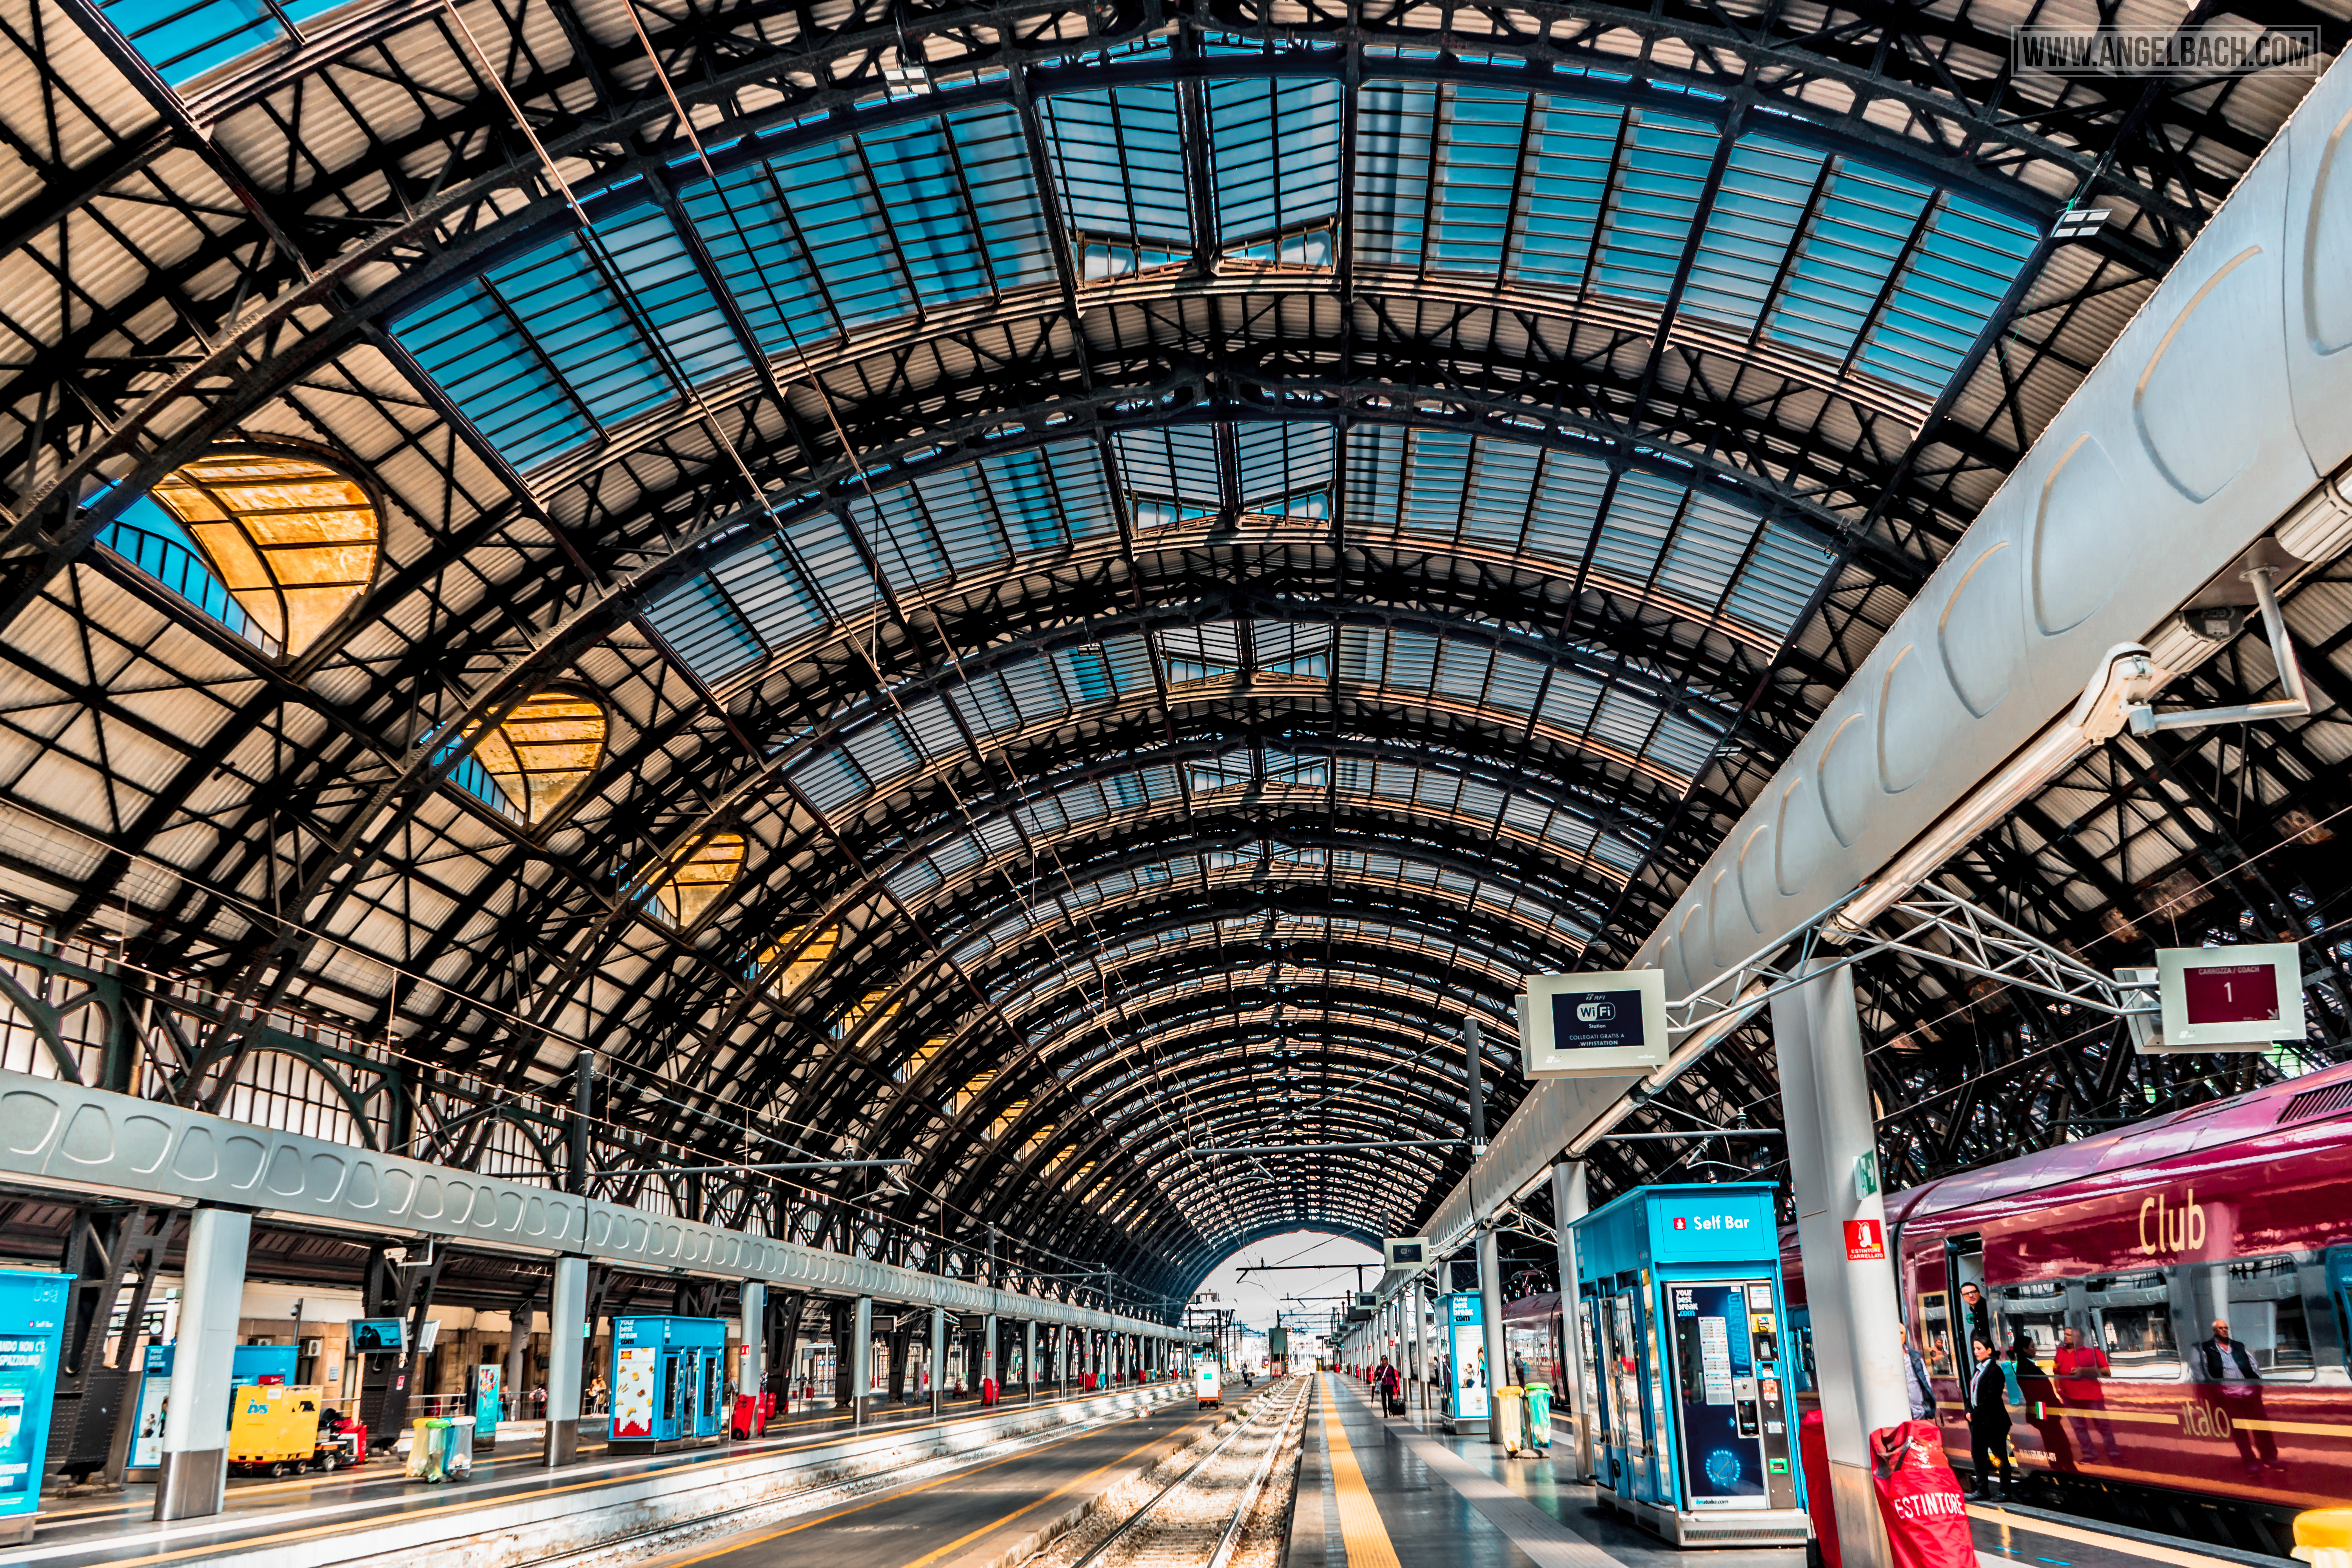 Milan, Milan Train Central Station, Leading lines, Photography, Roof, Italy, Cityscape